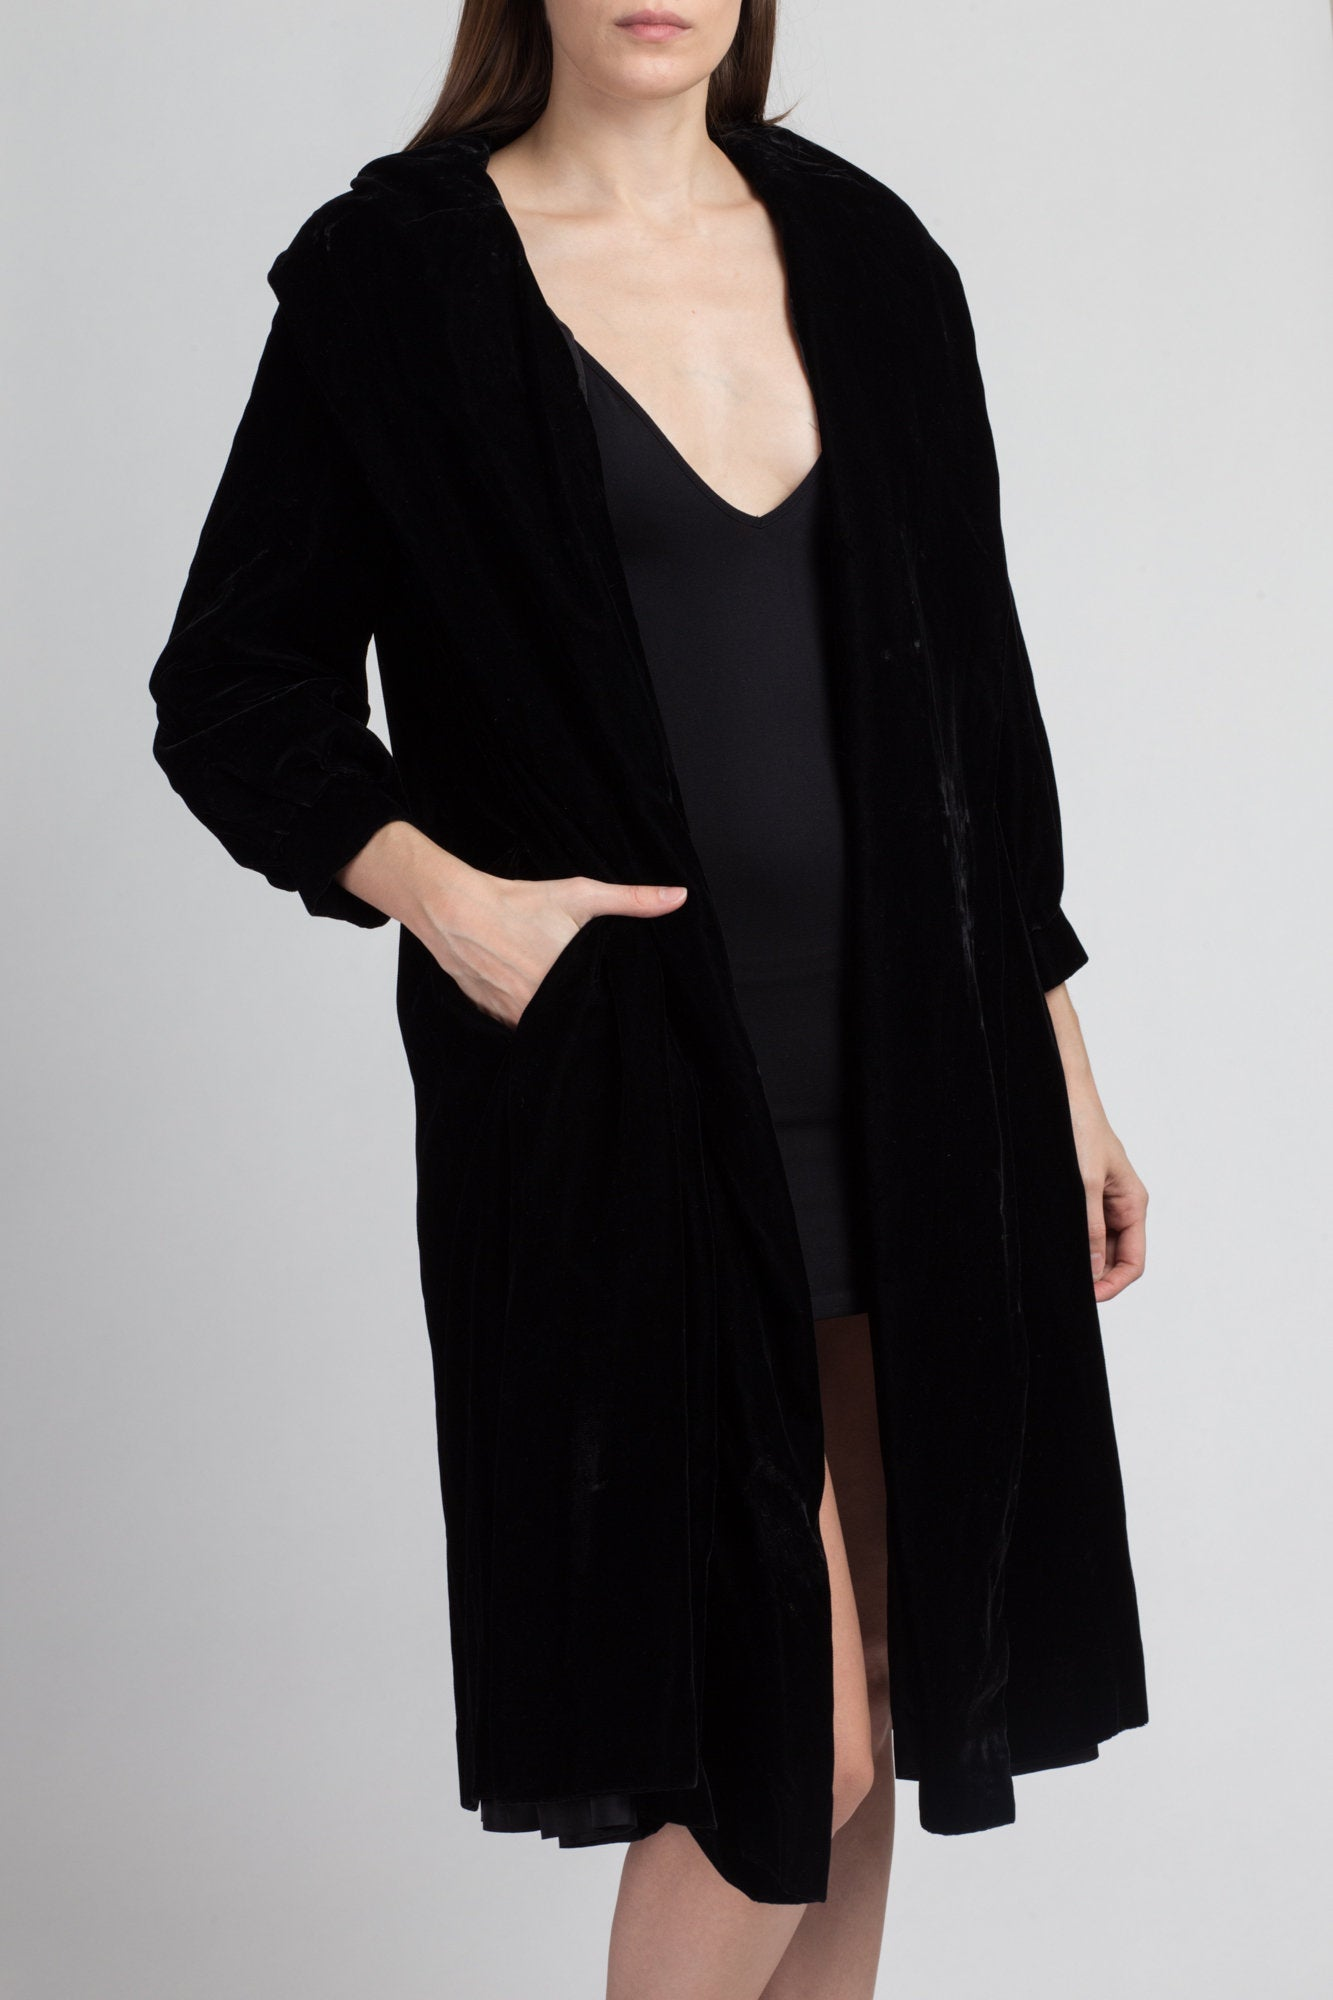 Vintage Claralura Black Velvet Coat - Small